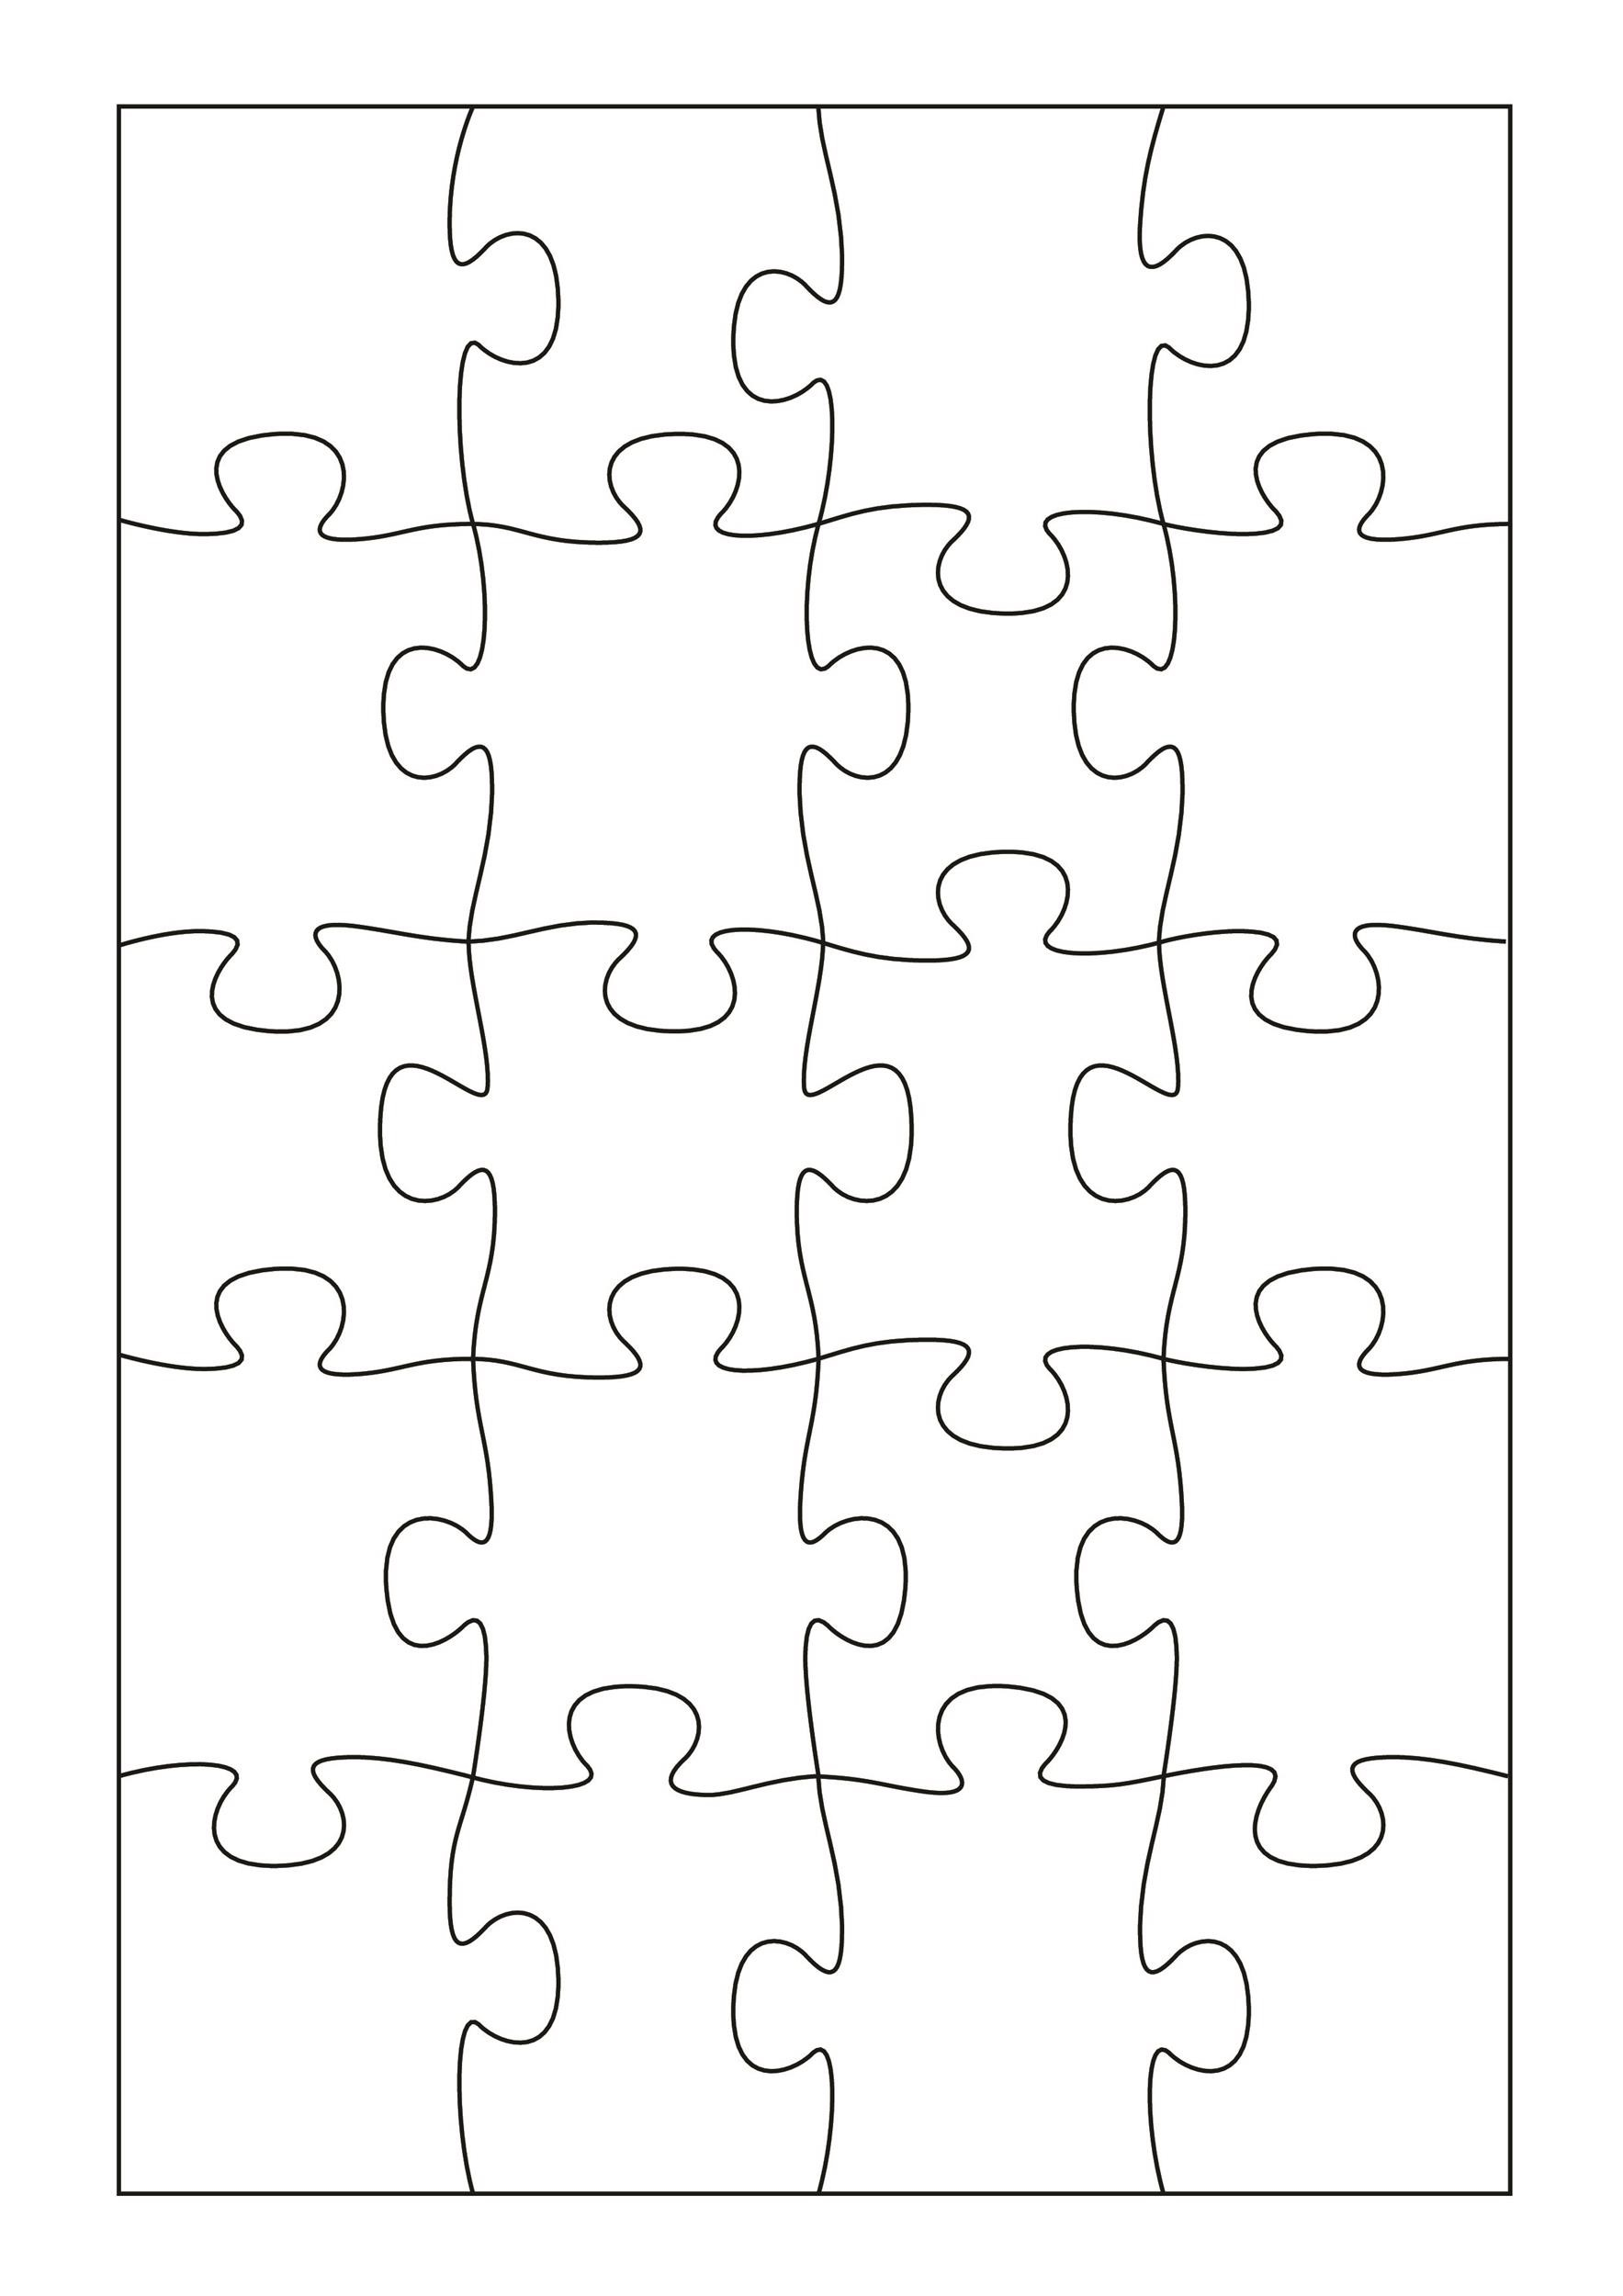 photograph regarding Printable Blank Puzzle identified as 19 Printable Puzzle Piece Templates ᐅ Template Lab